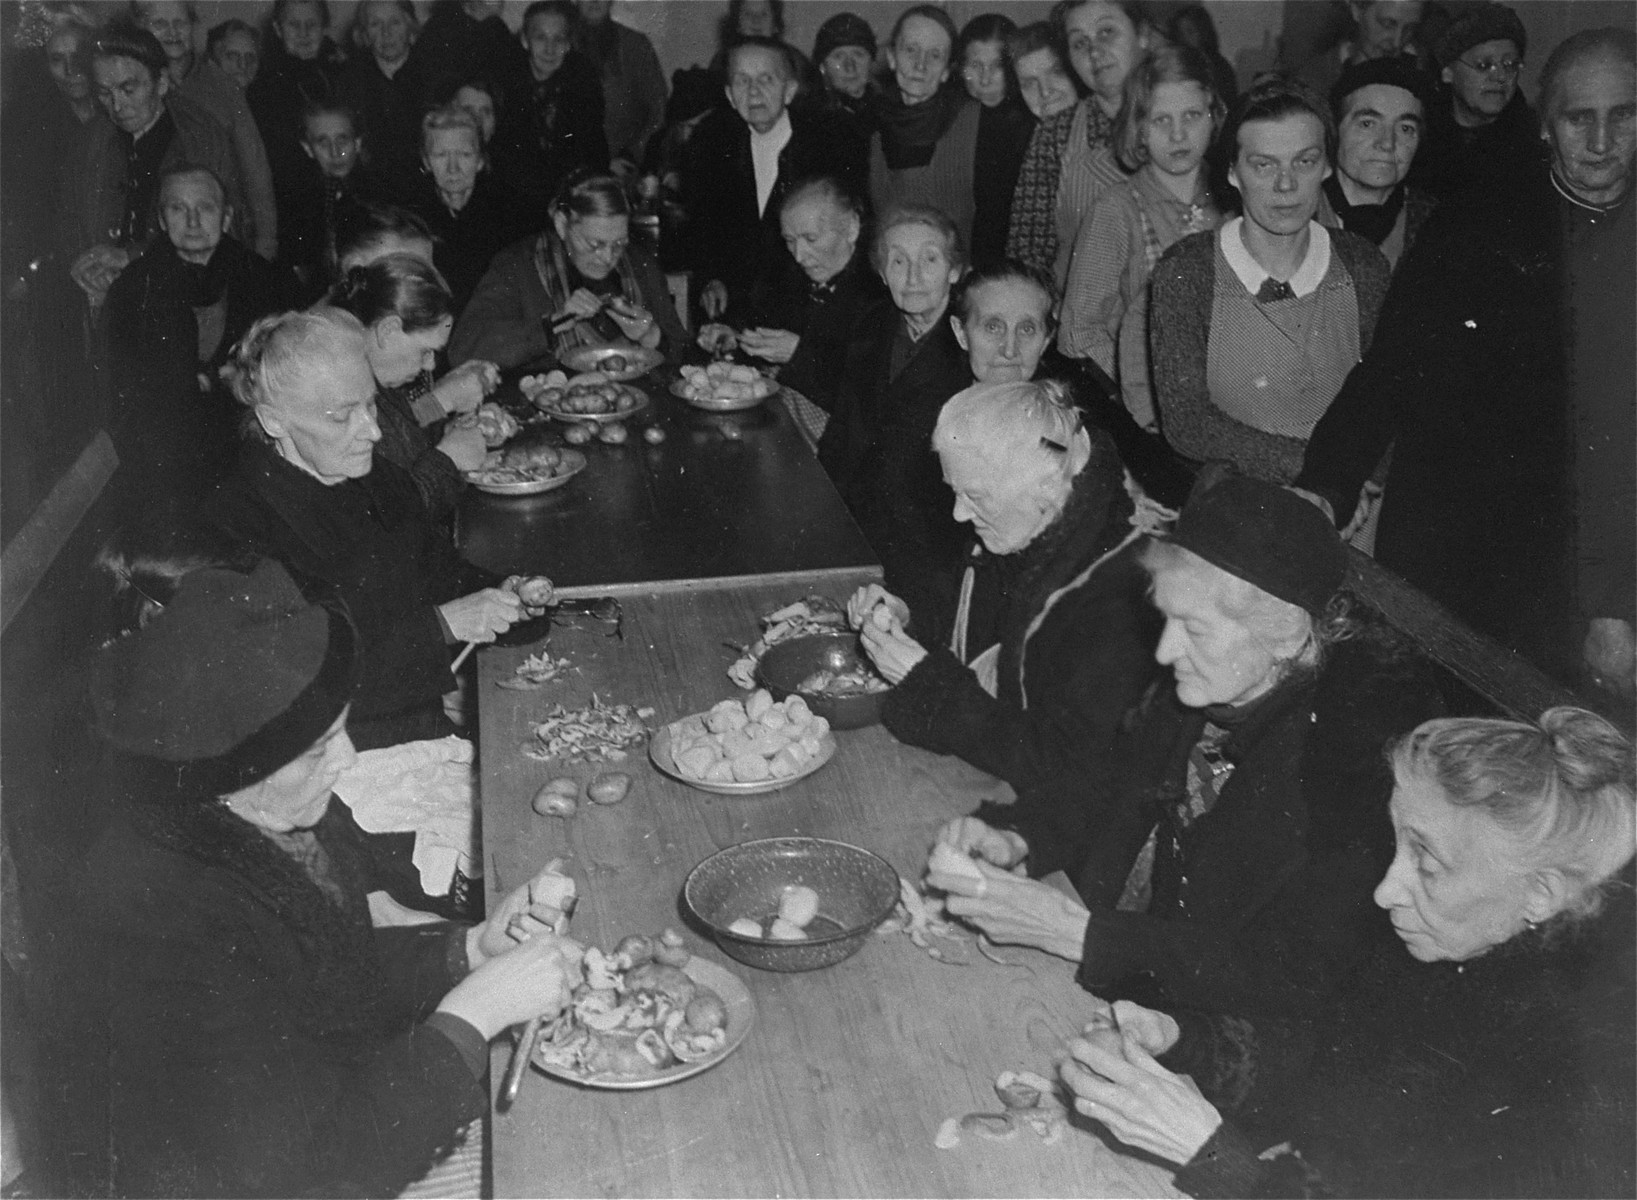 A group of elderly survivors preparing food at the Hadamar Institute.   The photograph was taken by an American military photographer soon after the liberation.